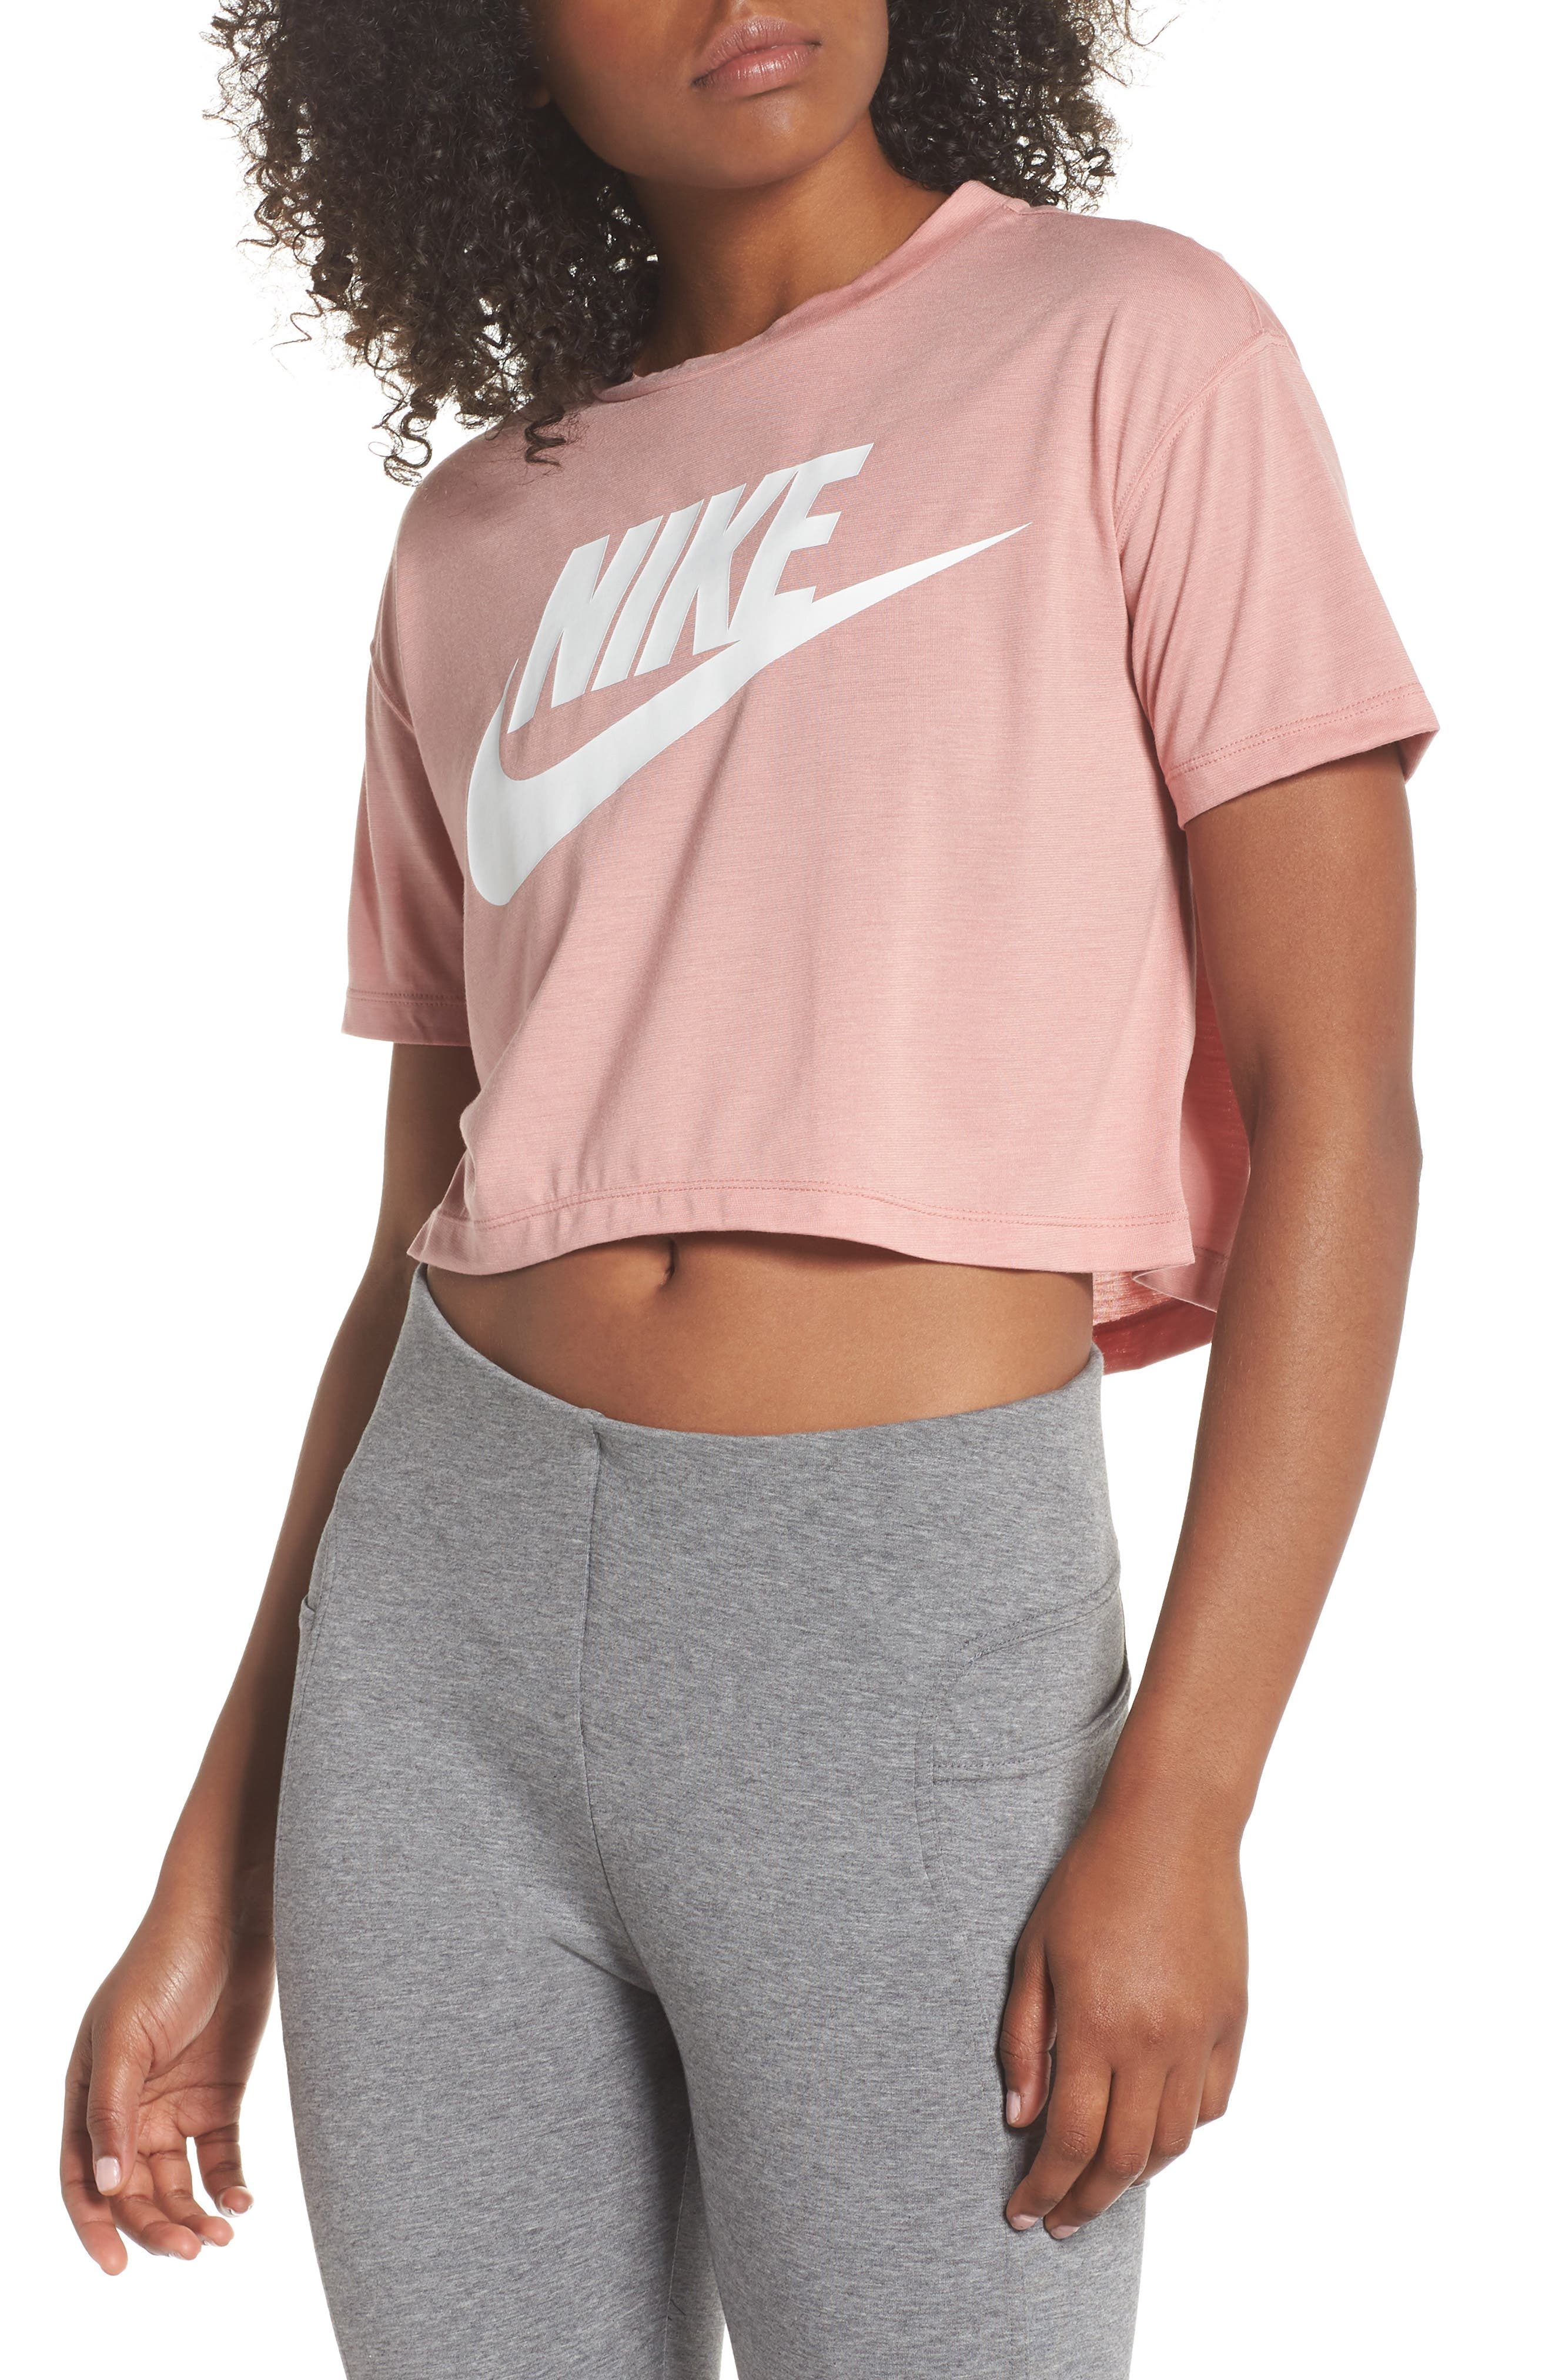 Sportswear Crop Top,                         Main,                         color, Rust Pink/ White